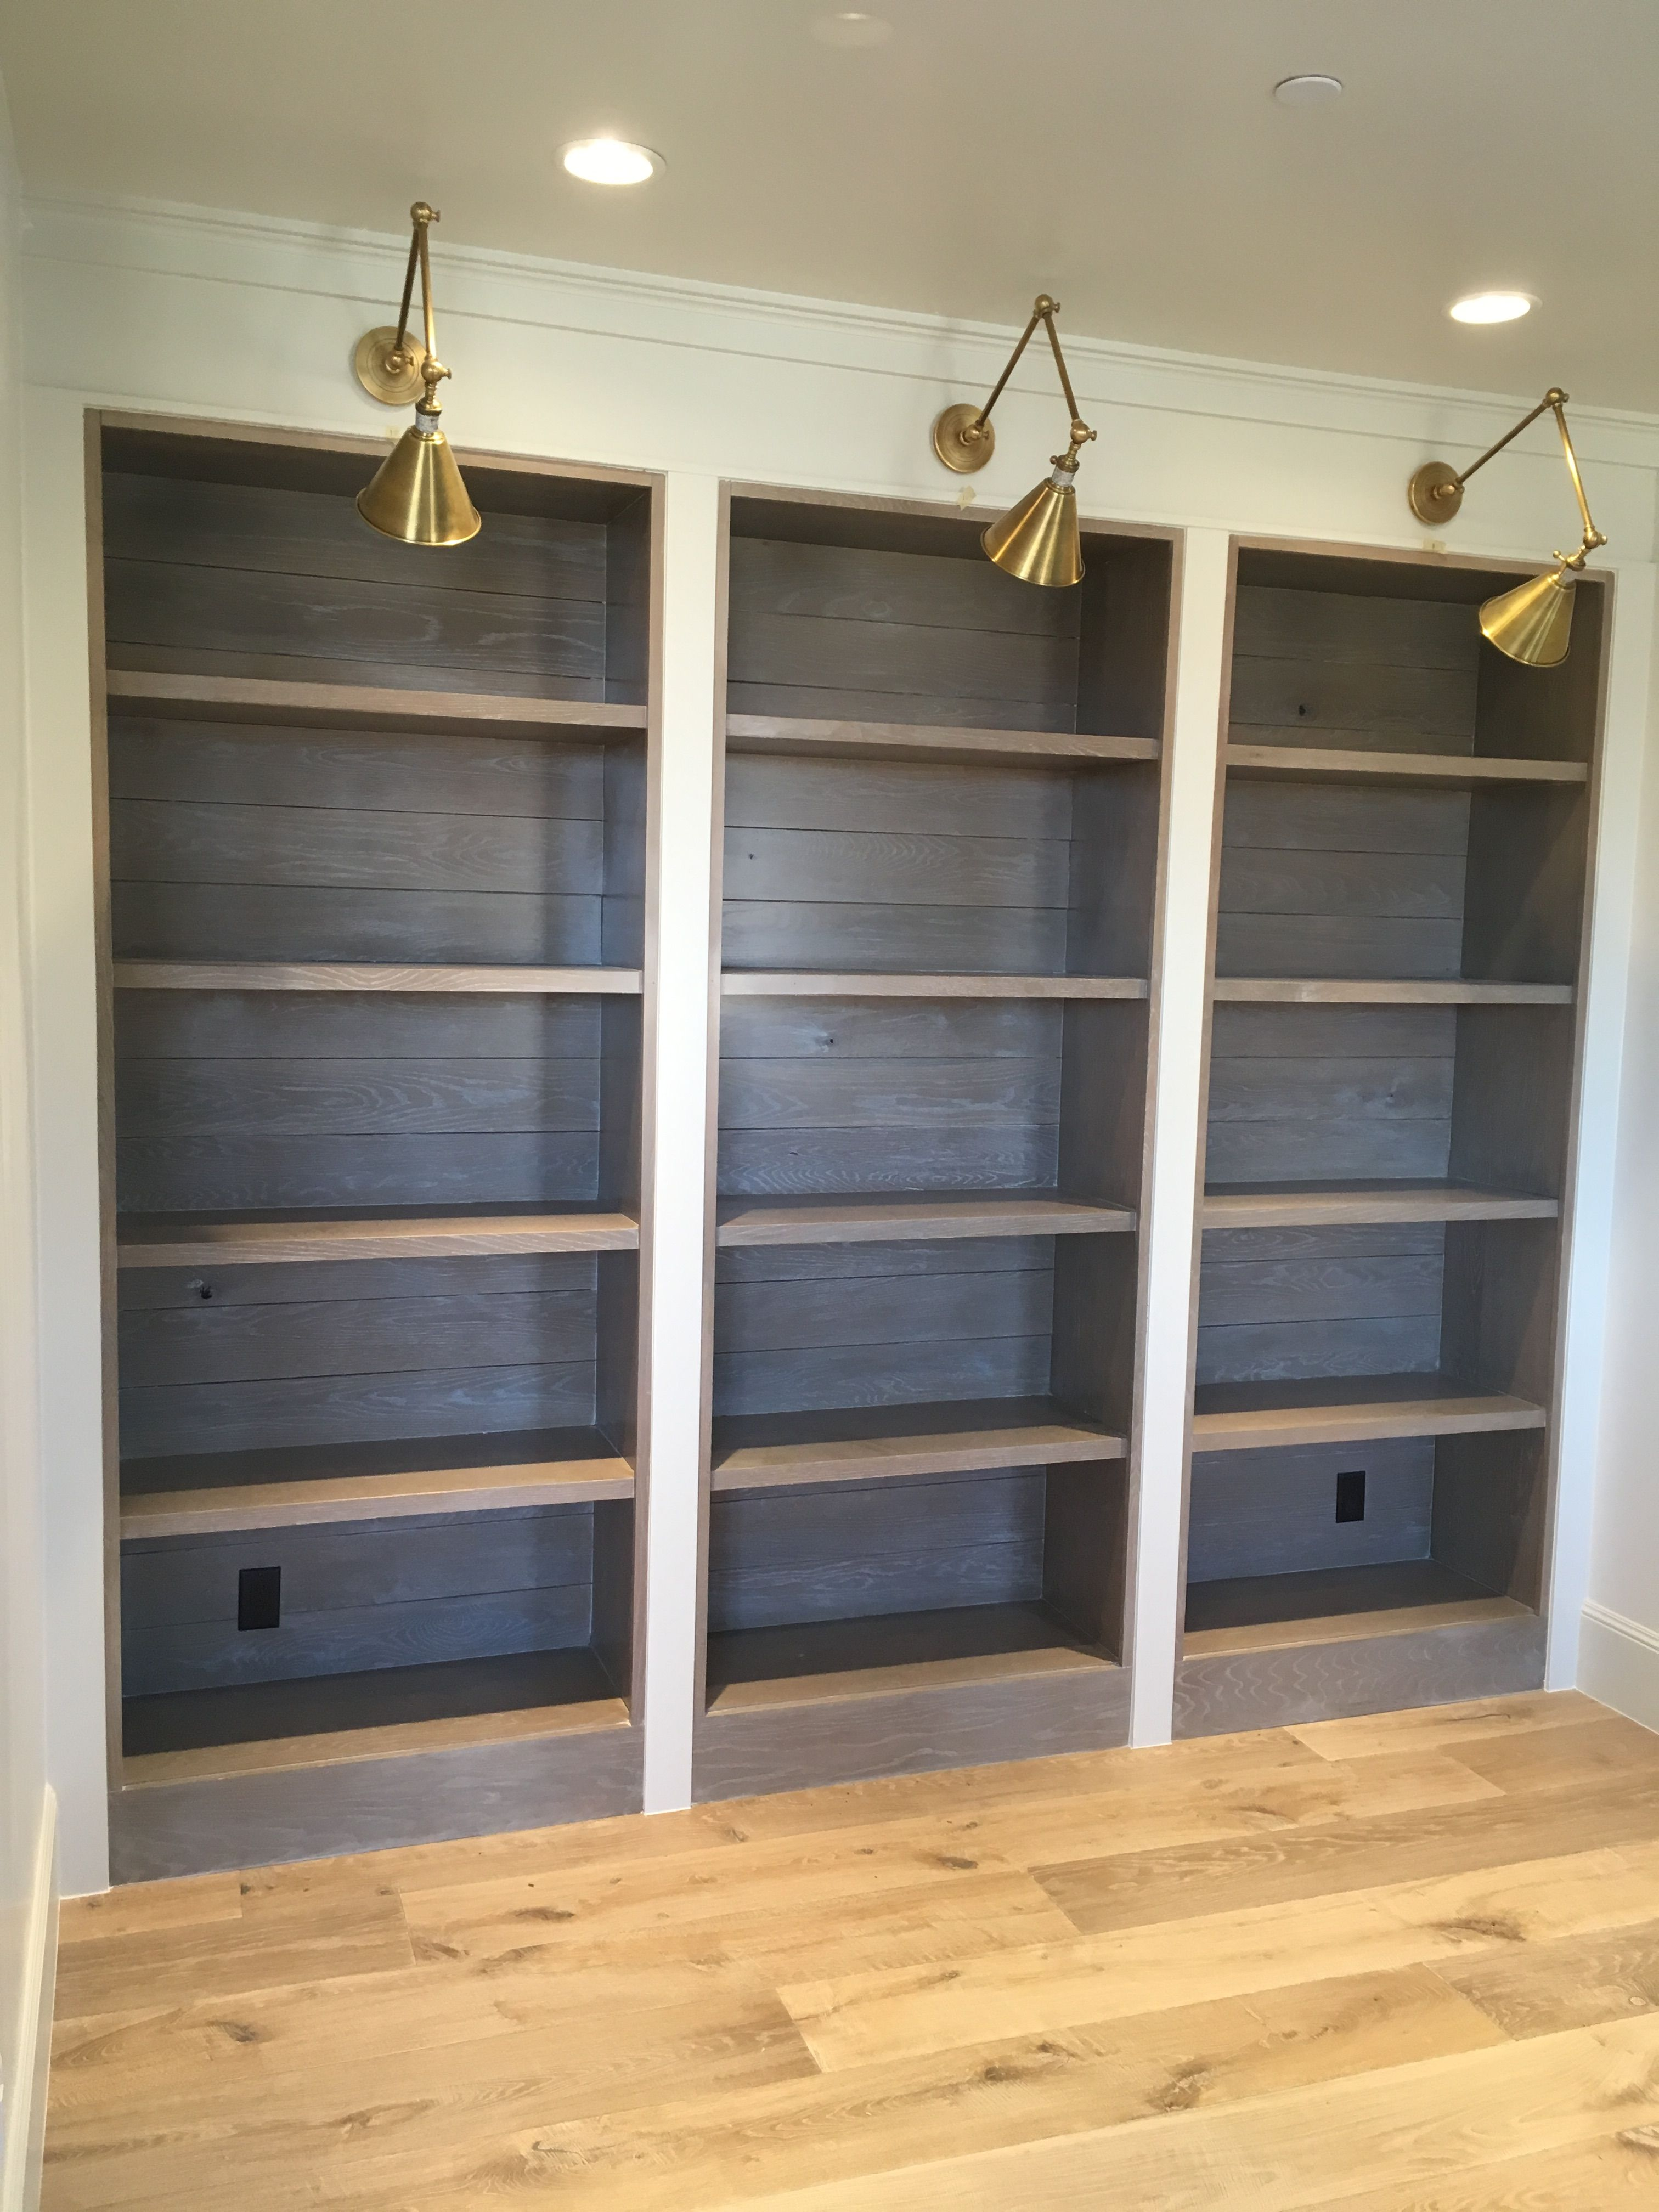 Pin by Cowie Construction on Built in Shelving // Closets